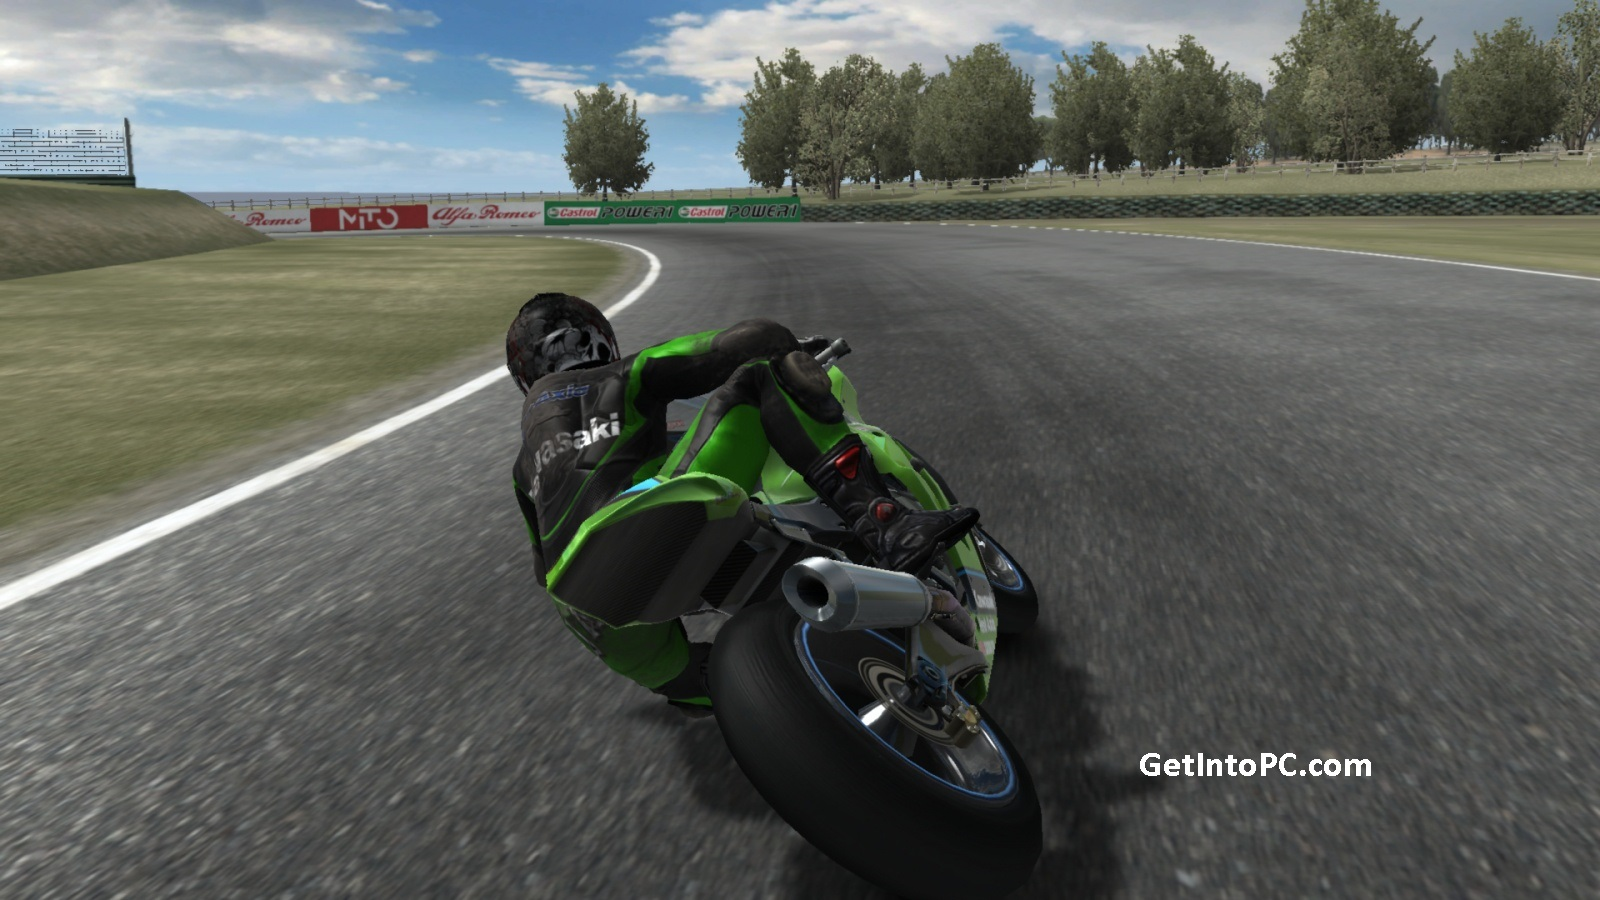 Bike Games Free Download For Pc This Bike racing game has